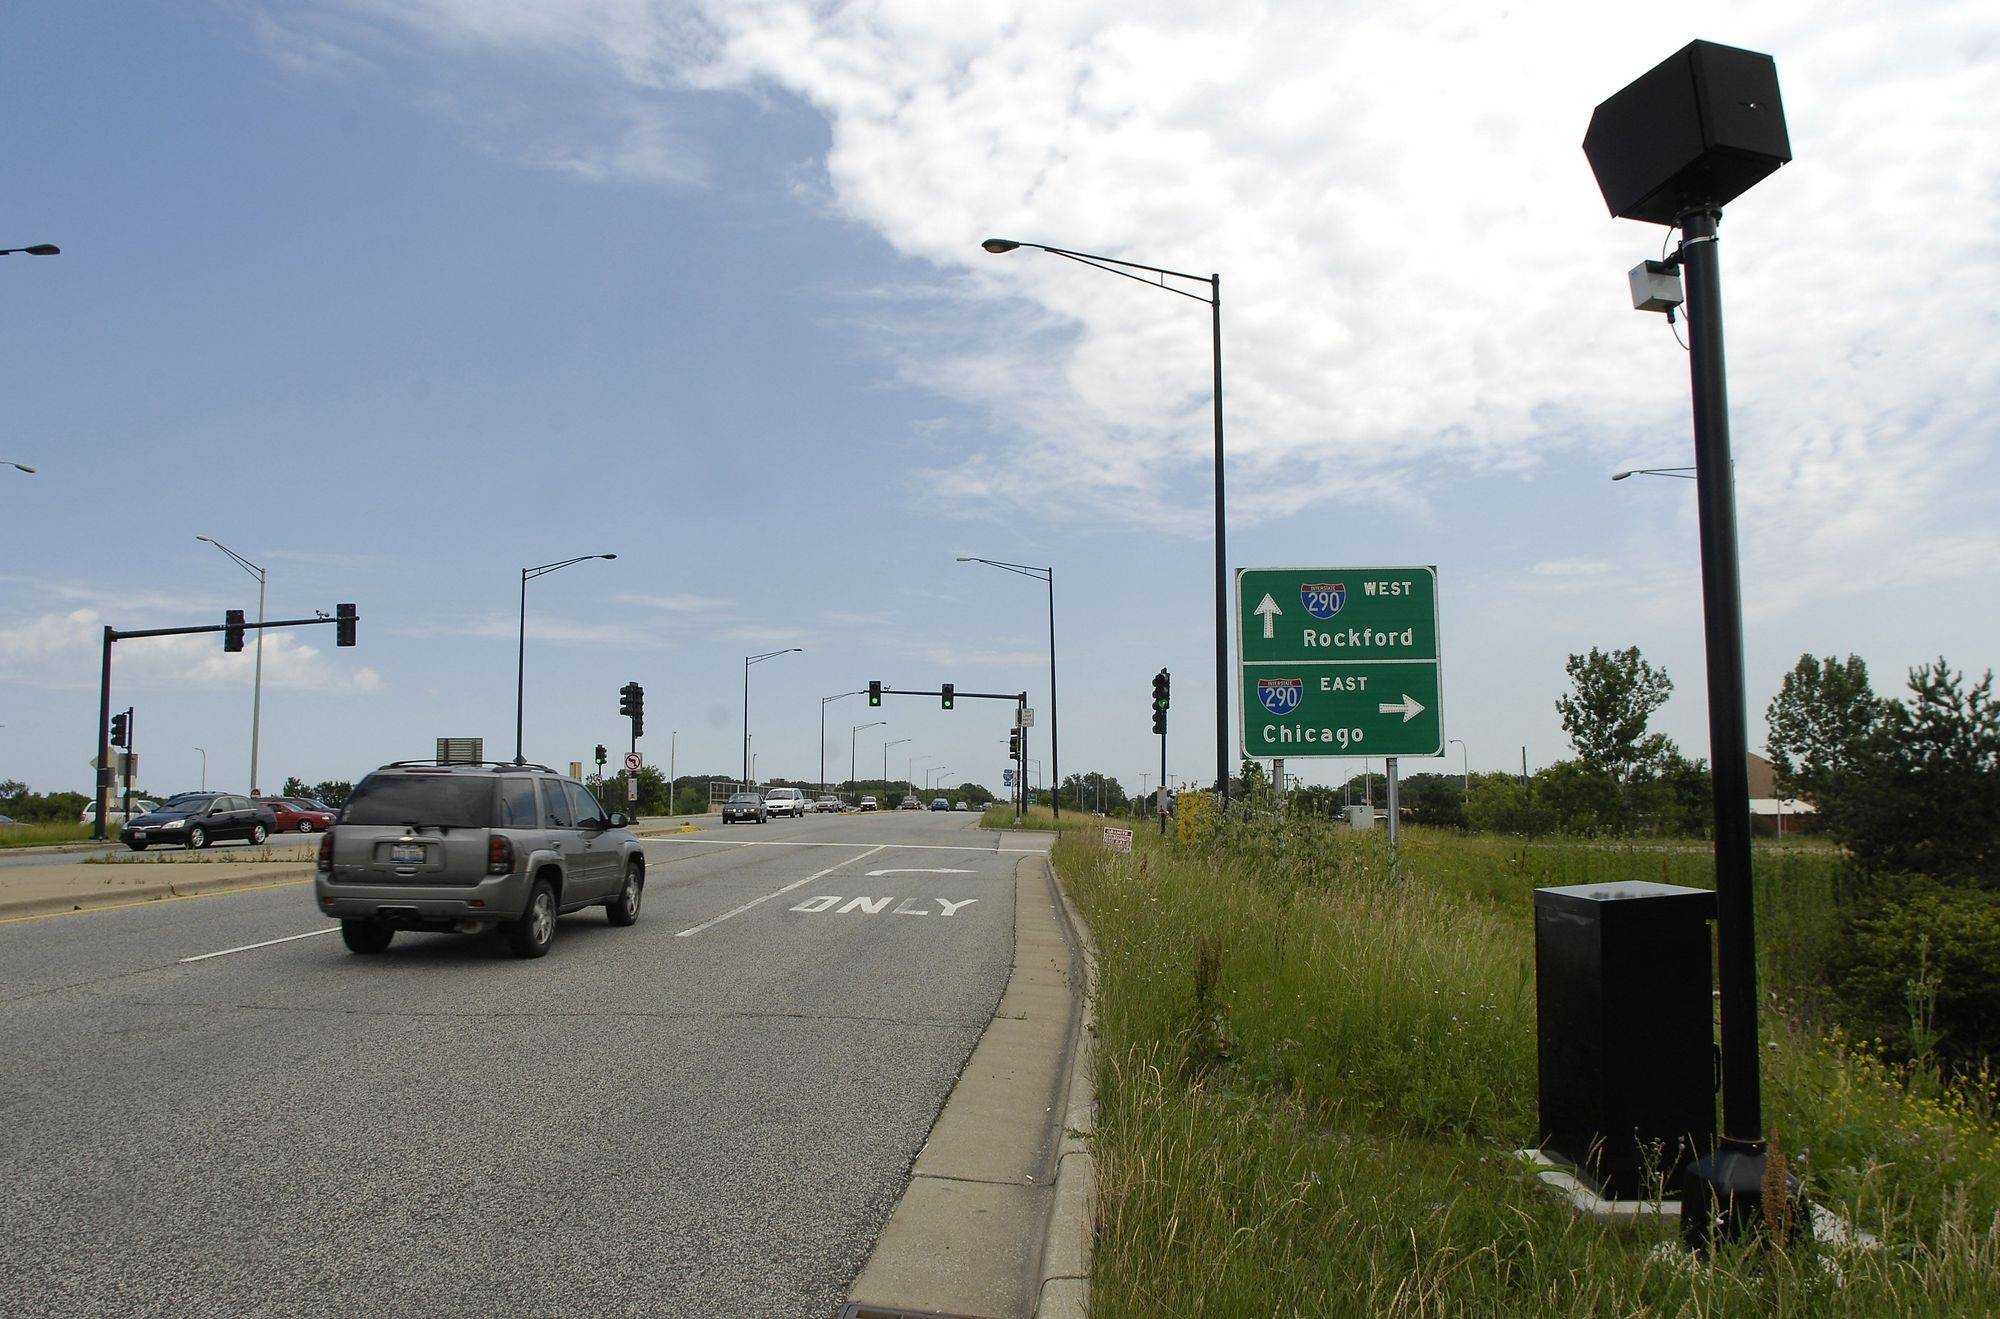 The candidates for the District 28 state Senate seat  incumbent Republican John Millner and Democratic challenger Corinne Pierog  disagree on the value of red-light cameras.